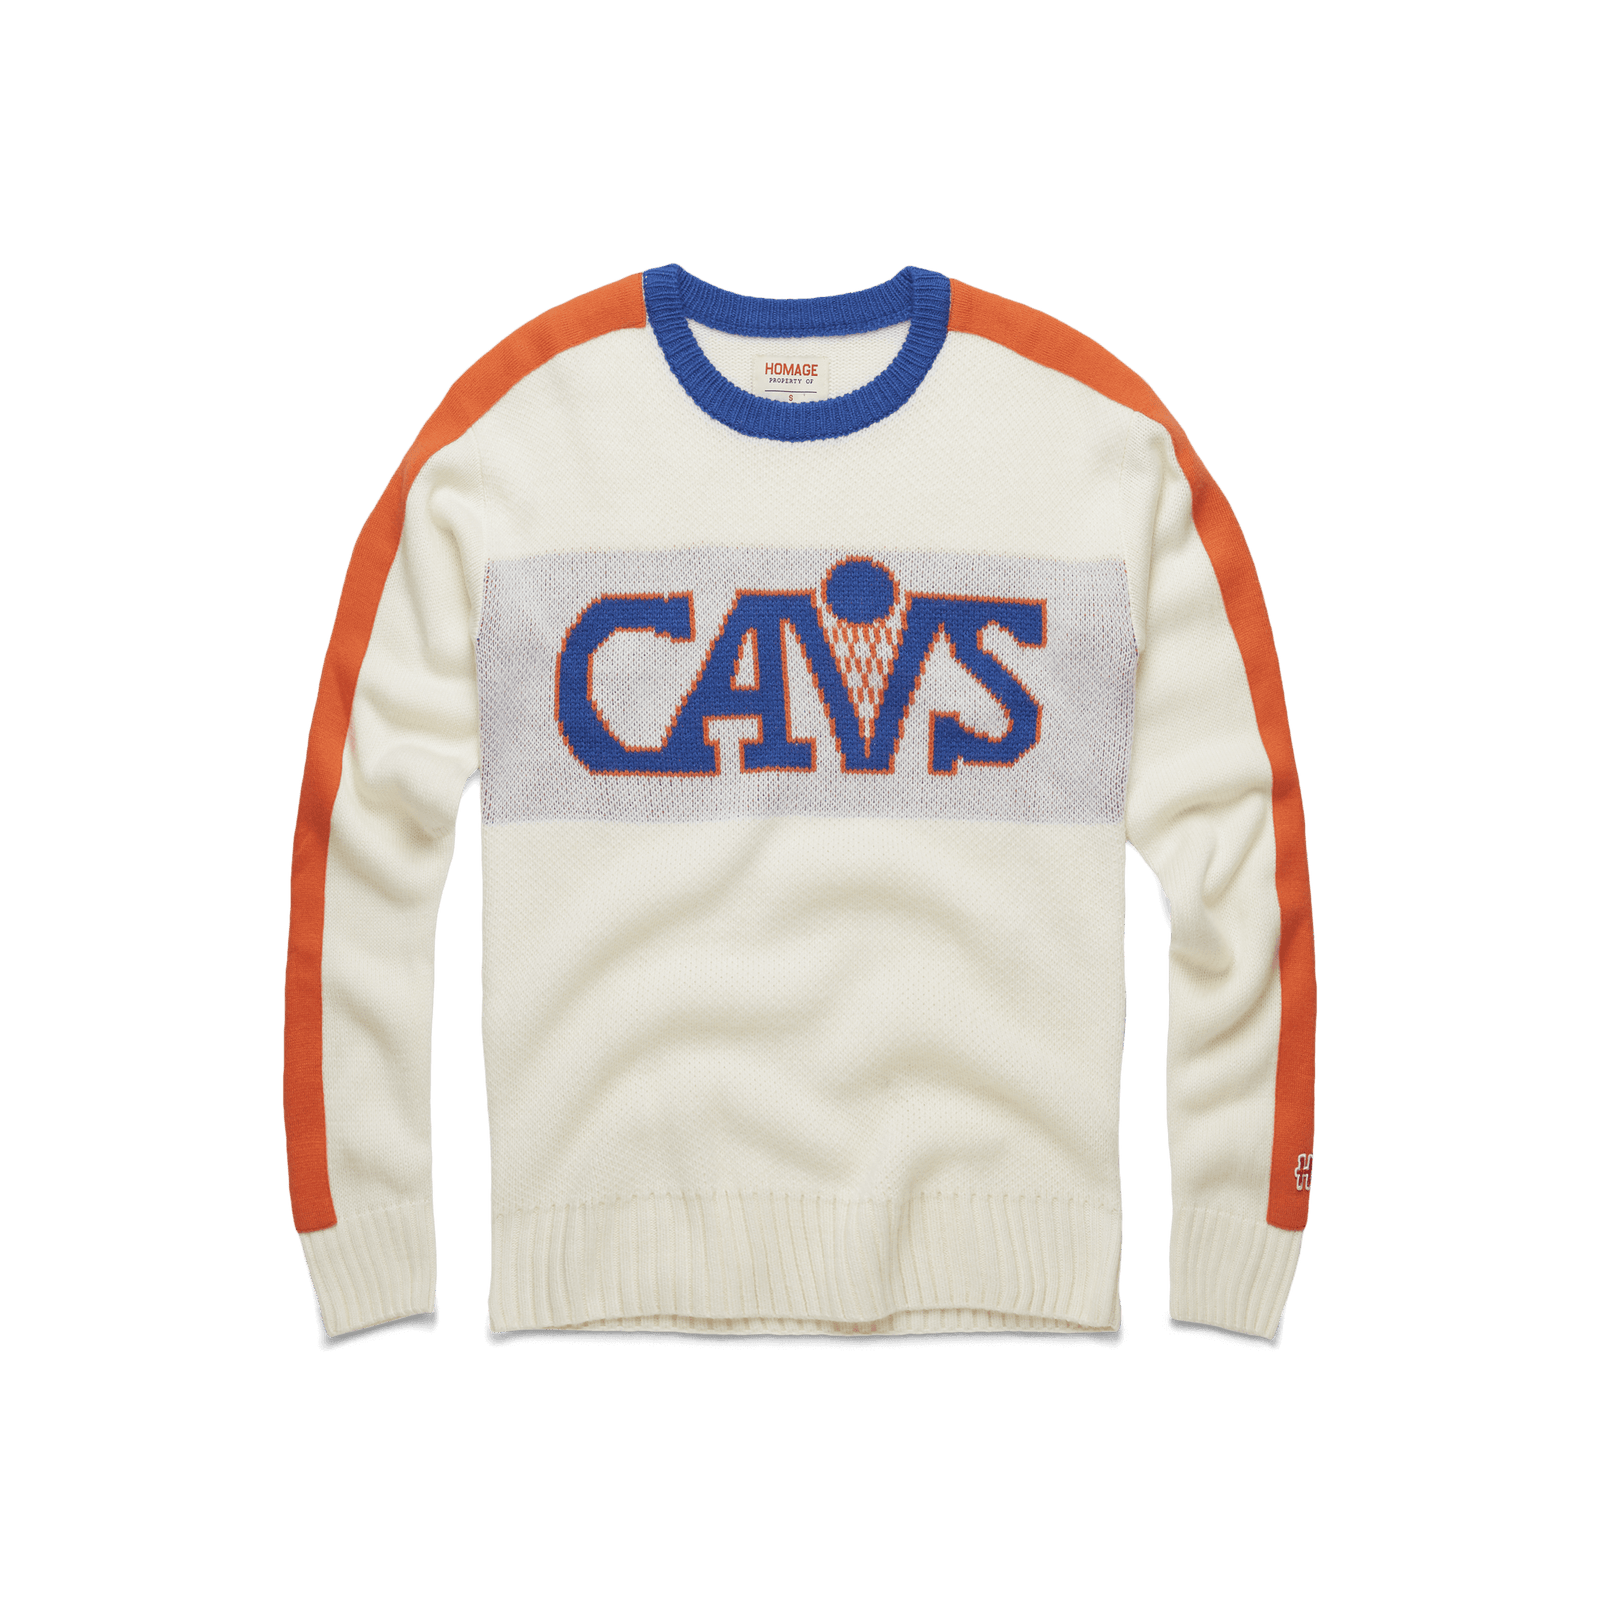 Cleveland Cavs 1989 Sweater